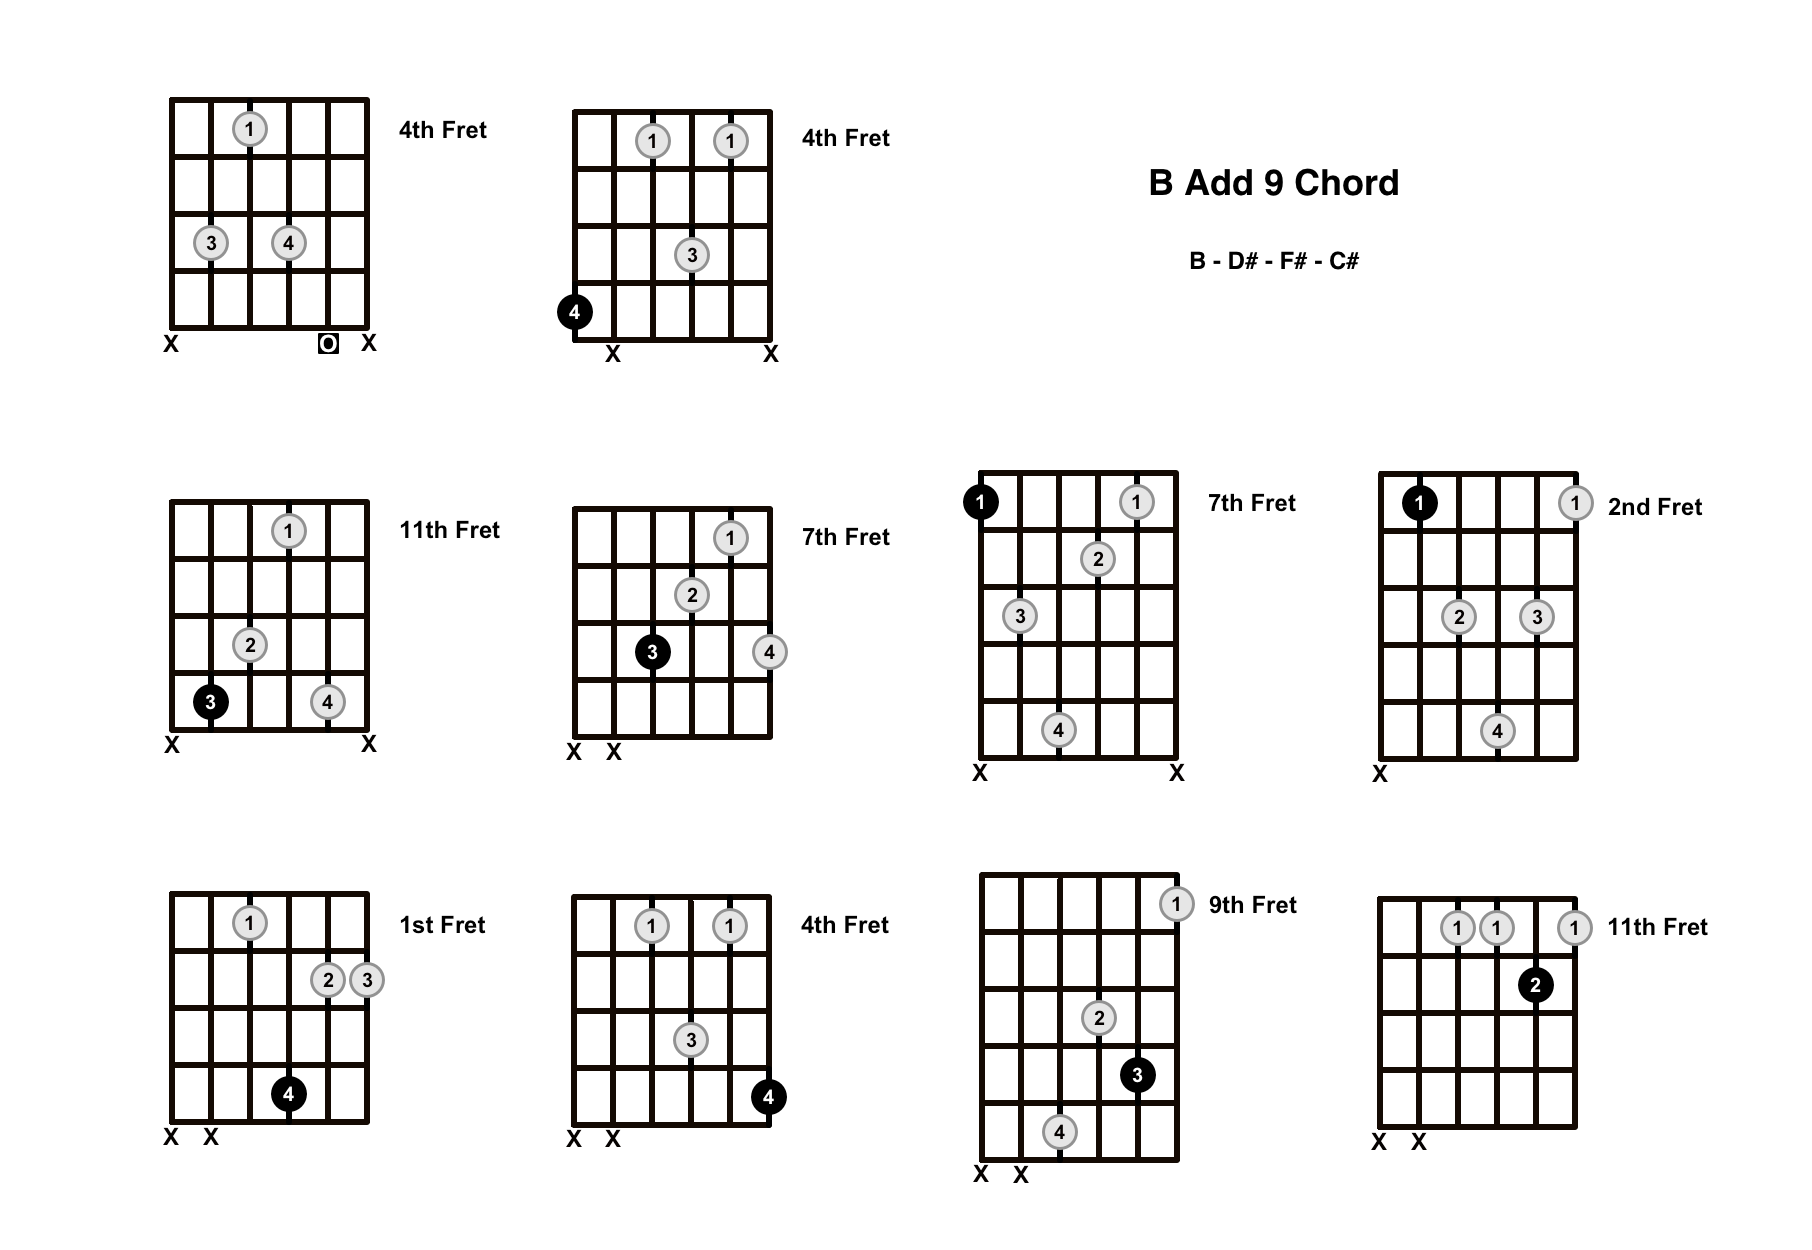 B Add 9 Chord On The Guitar (B Add 9/B Add 2) – Diagrams, Finger Positions and Theory